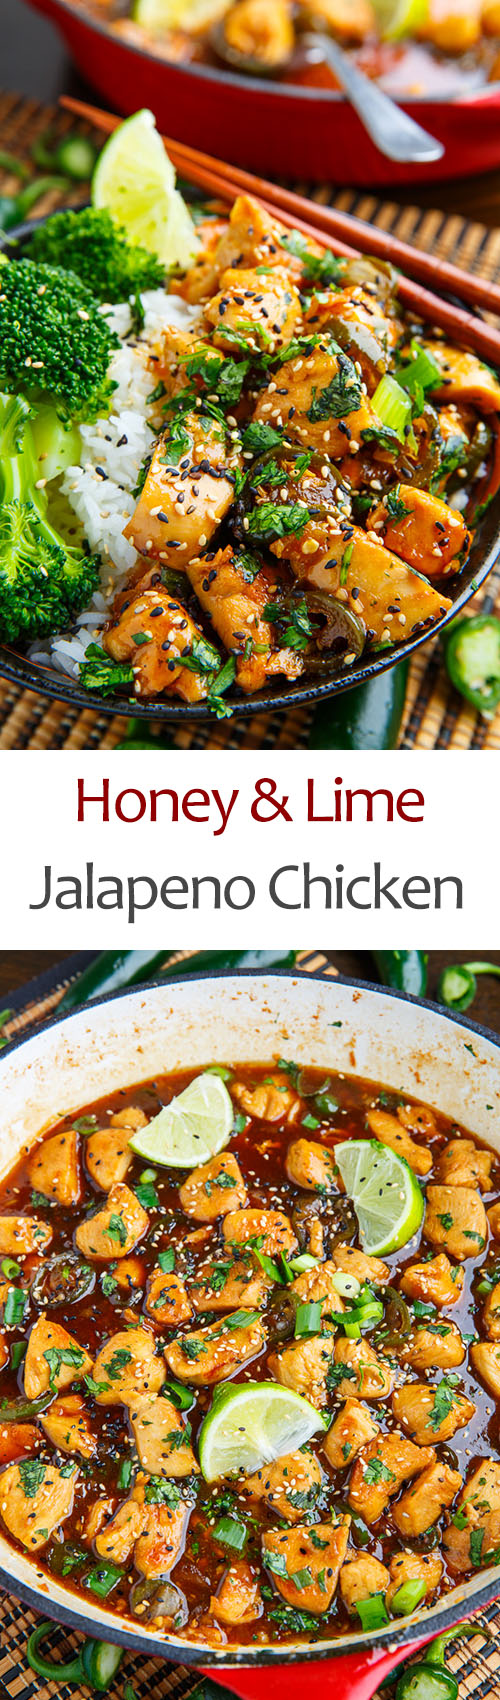 Honey and Lime Jalapeno Chicken